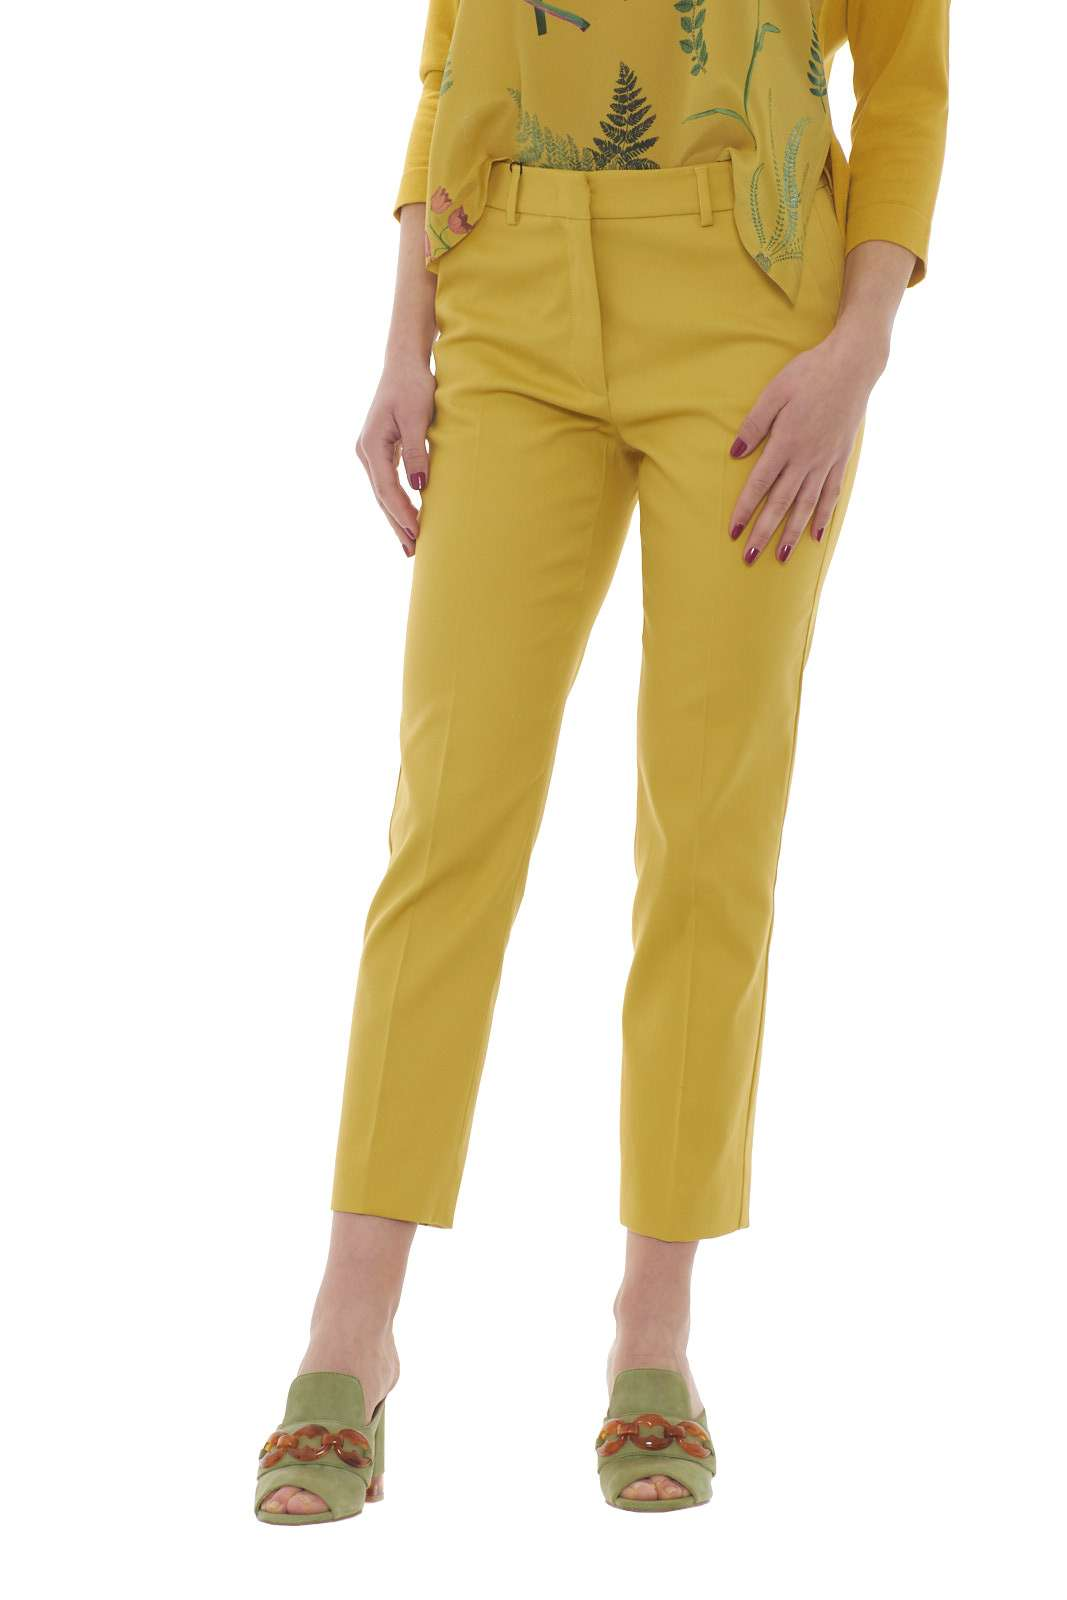 https://www.parmax.com/media/catalog/product/a/i/PE-outlet_parmax-pantaloni-donna-MaxMara-51310107-A.jpg